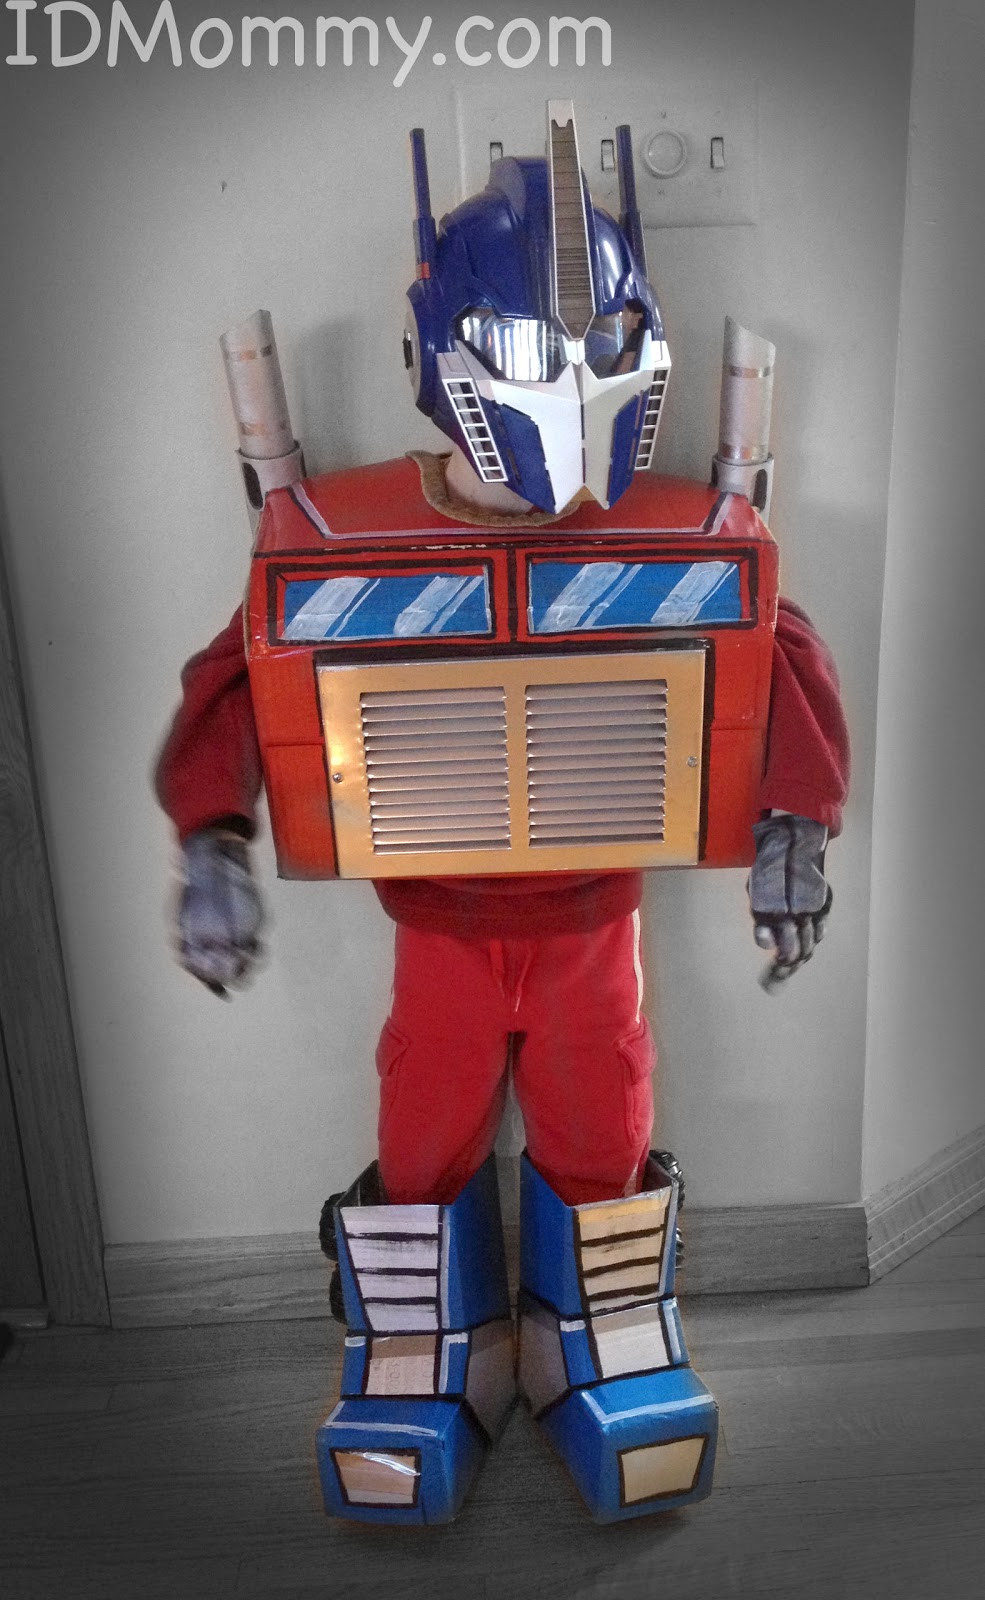 Best ideas about DIY Optimus Prime Costume . Save or Pin ID Mommy DIY Mickey Mouse and Optimus Prime Transformer Now.